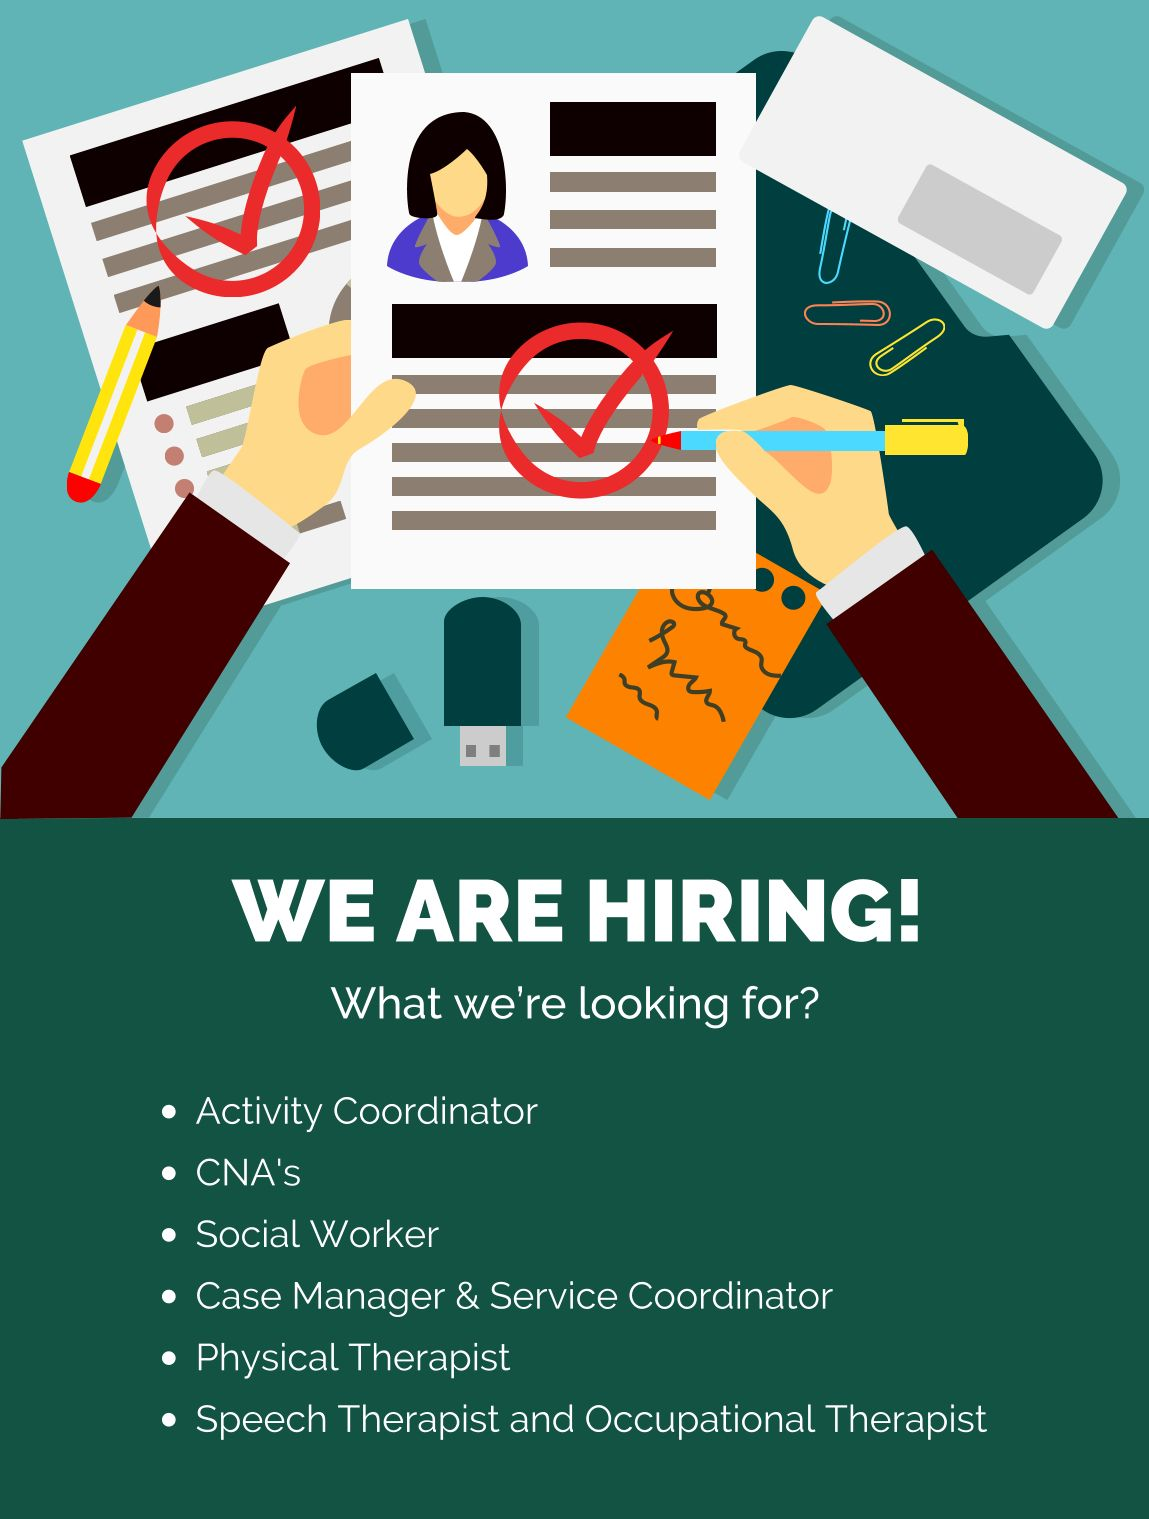 Home We are hiring, Wellness center, Occupational therapist